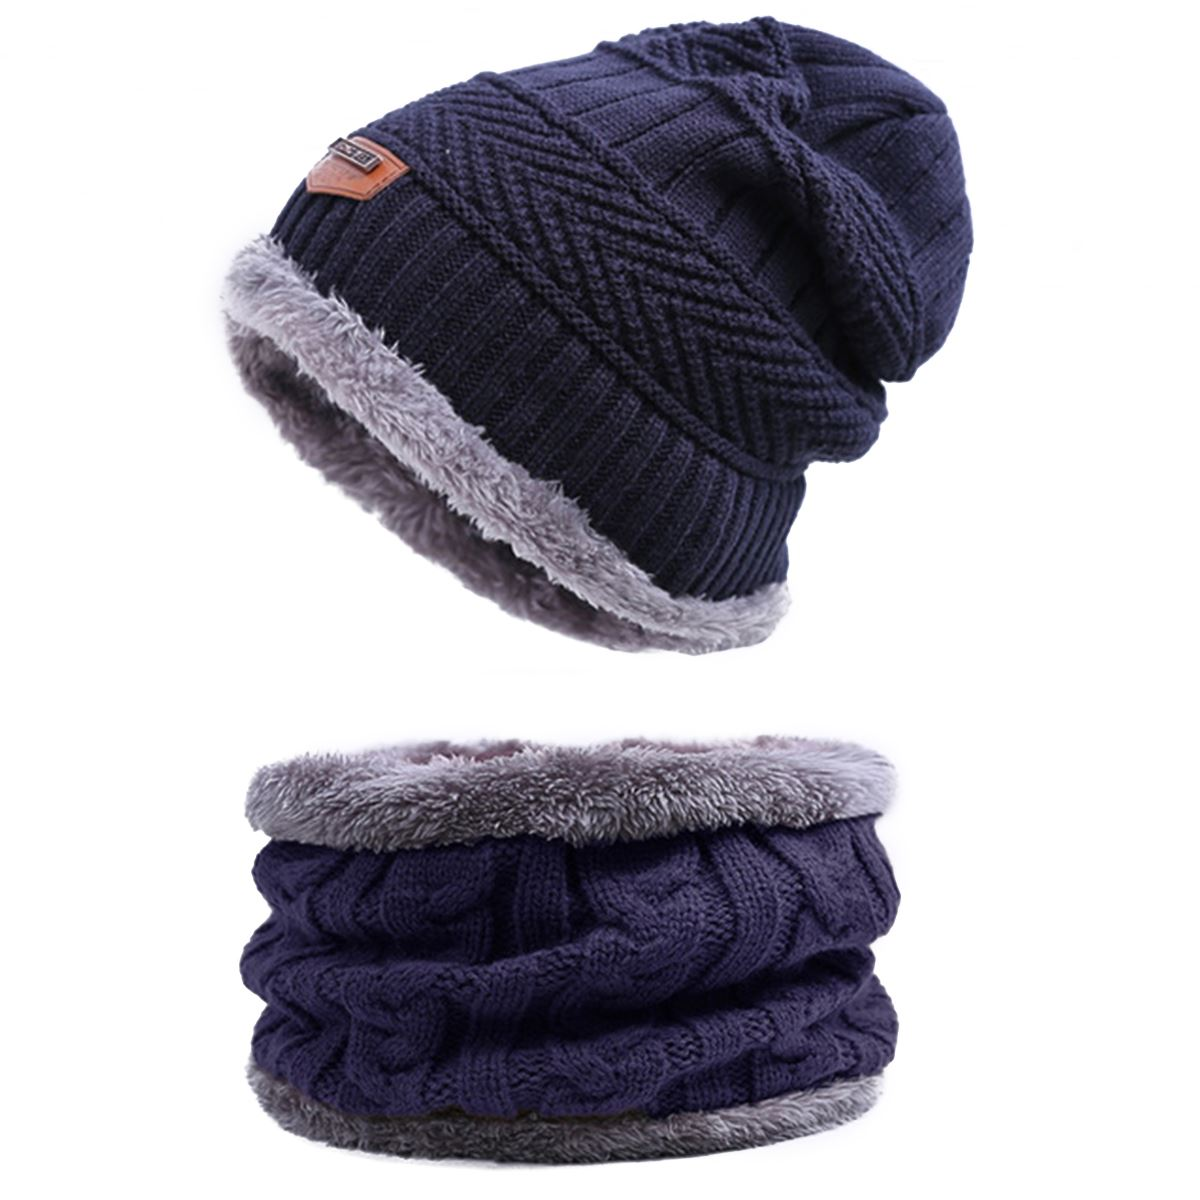 e8dba35d60d03 top 10 scarf men hat set brands and get free shipping - aak5bkec